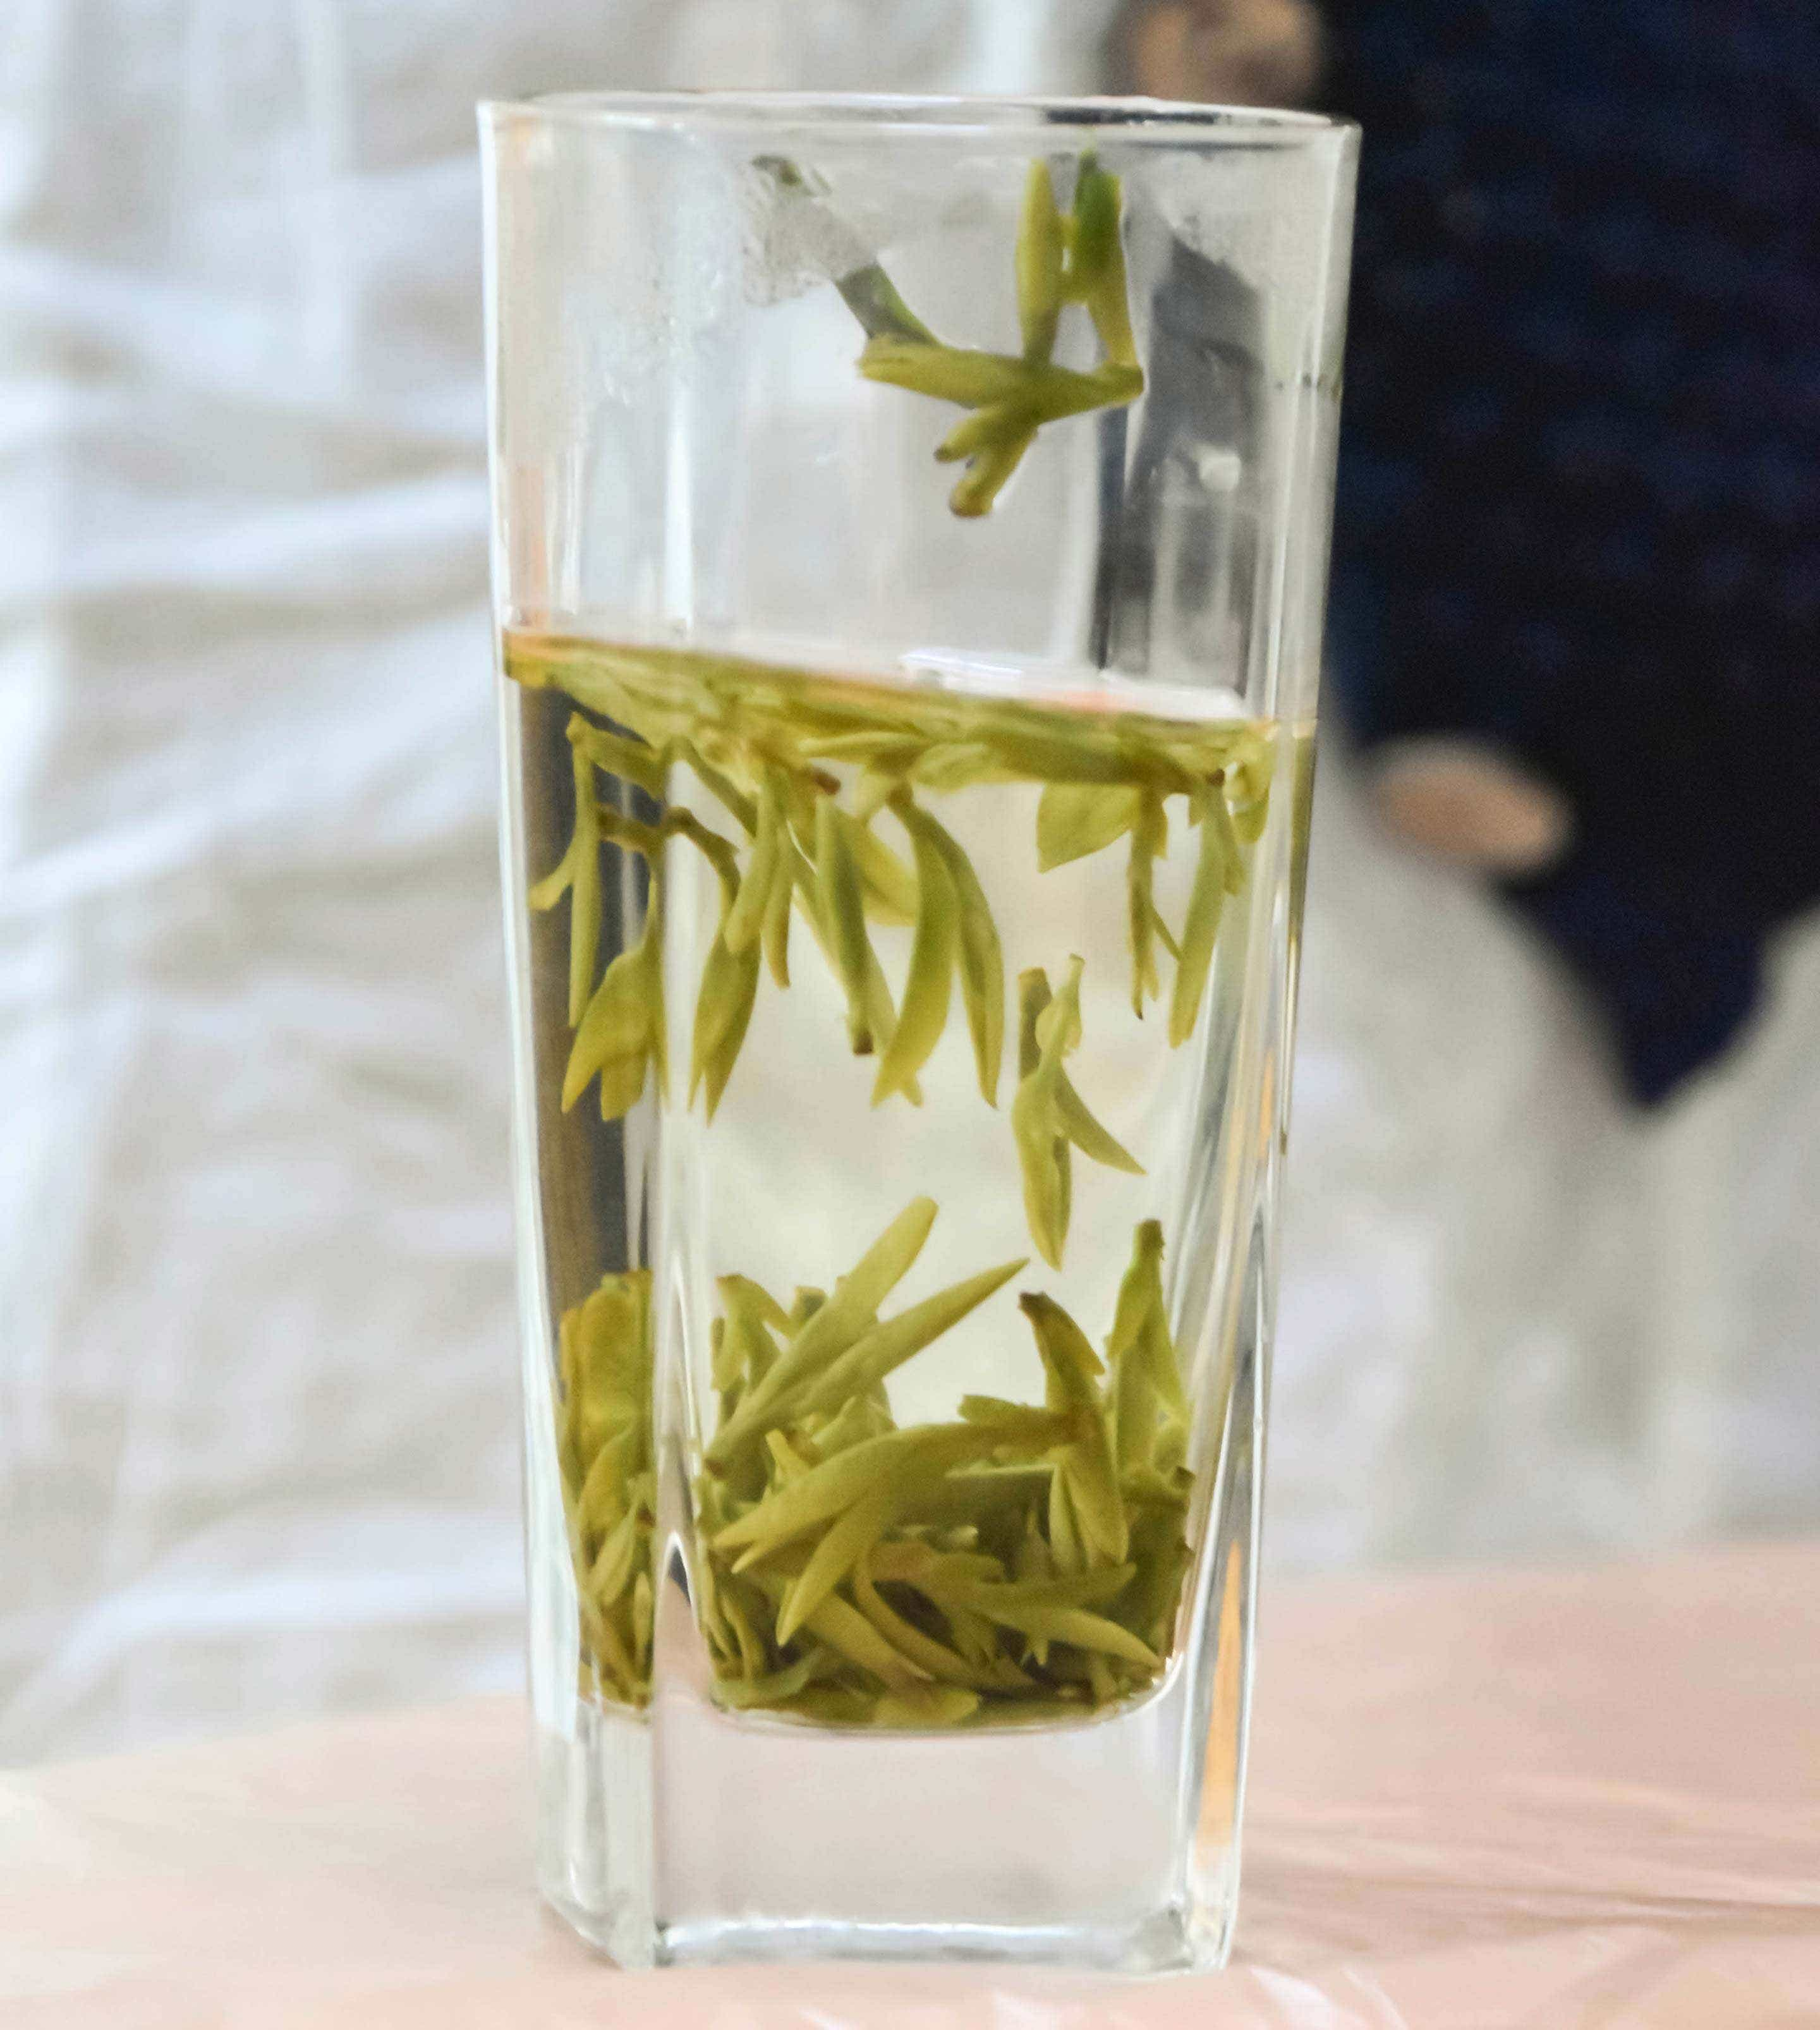 dragonwell-day-1-longjing-qunti-steep-0011-largex2